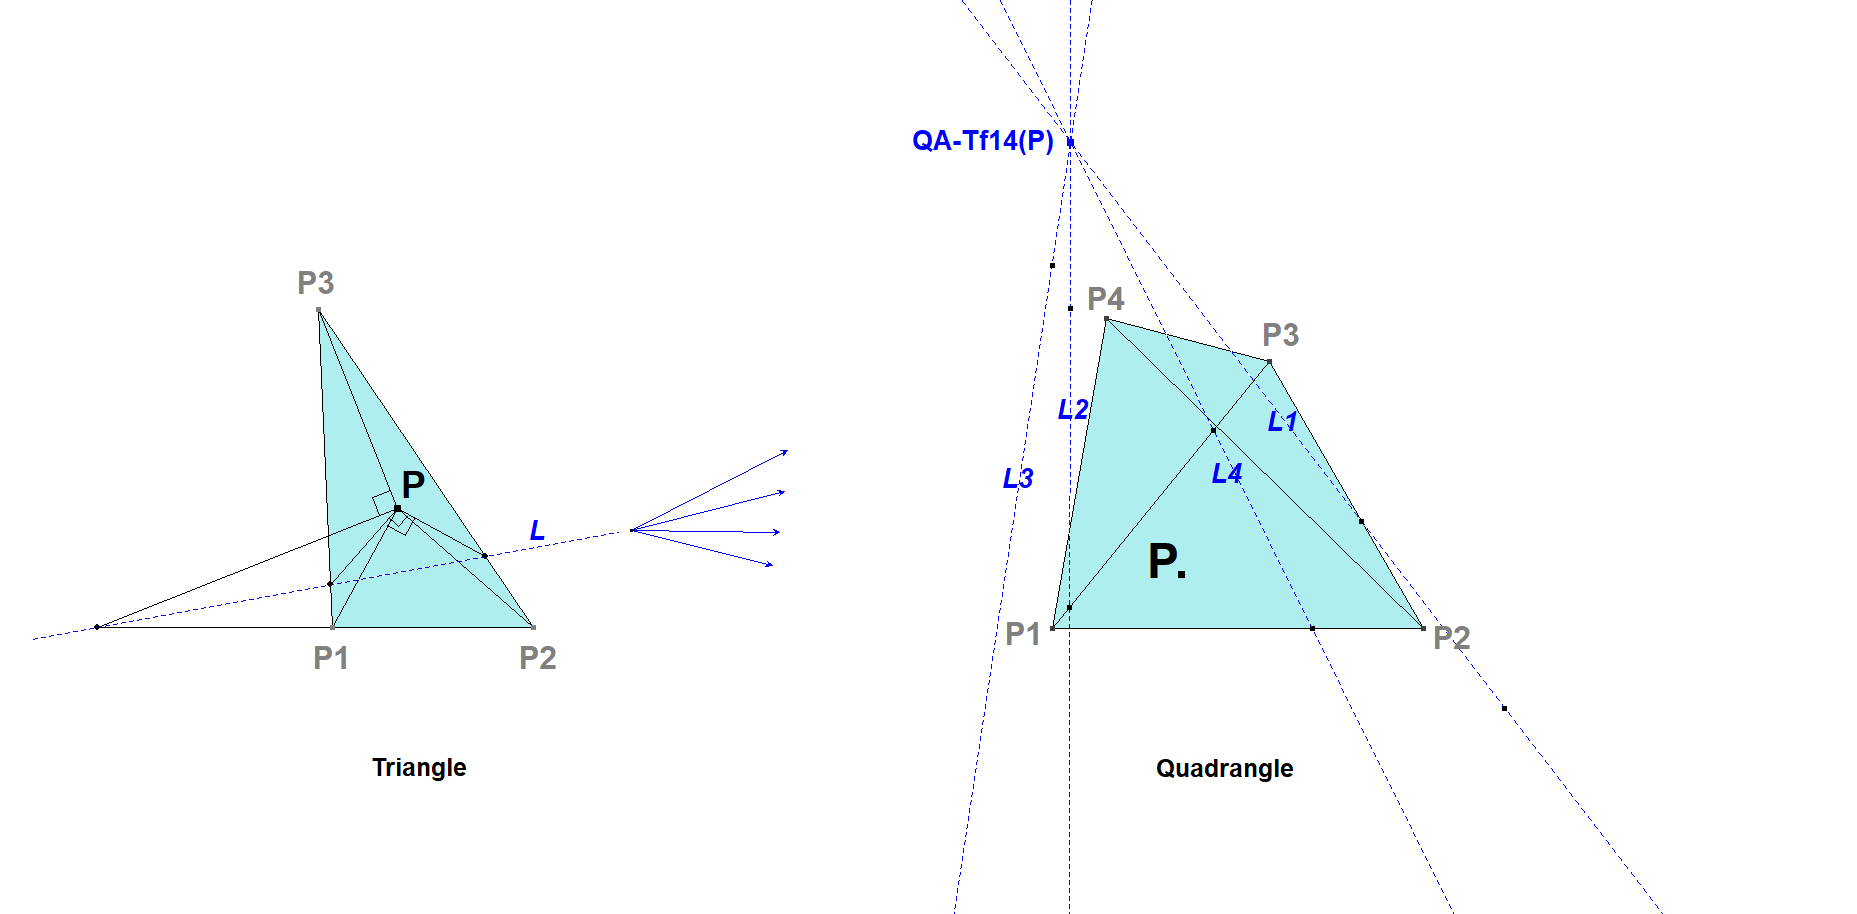 QA Tf14 Orthotransversal Point 01